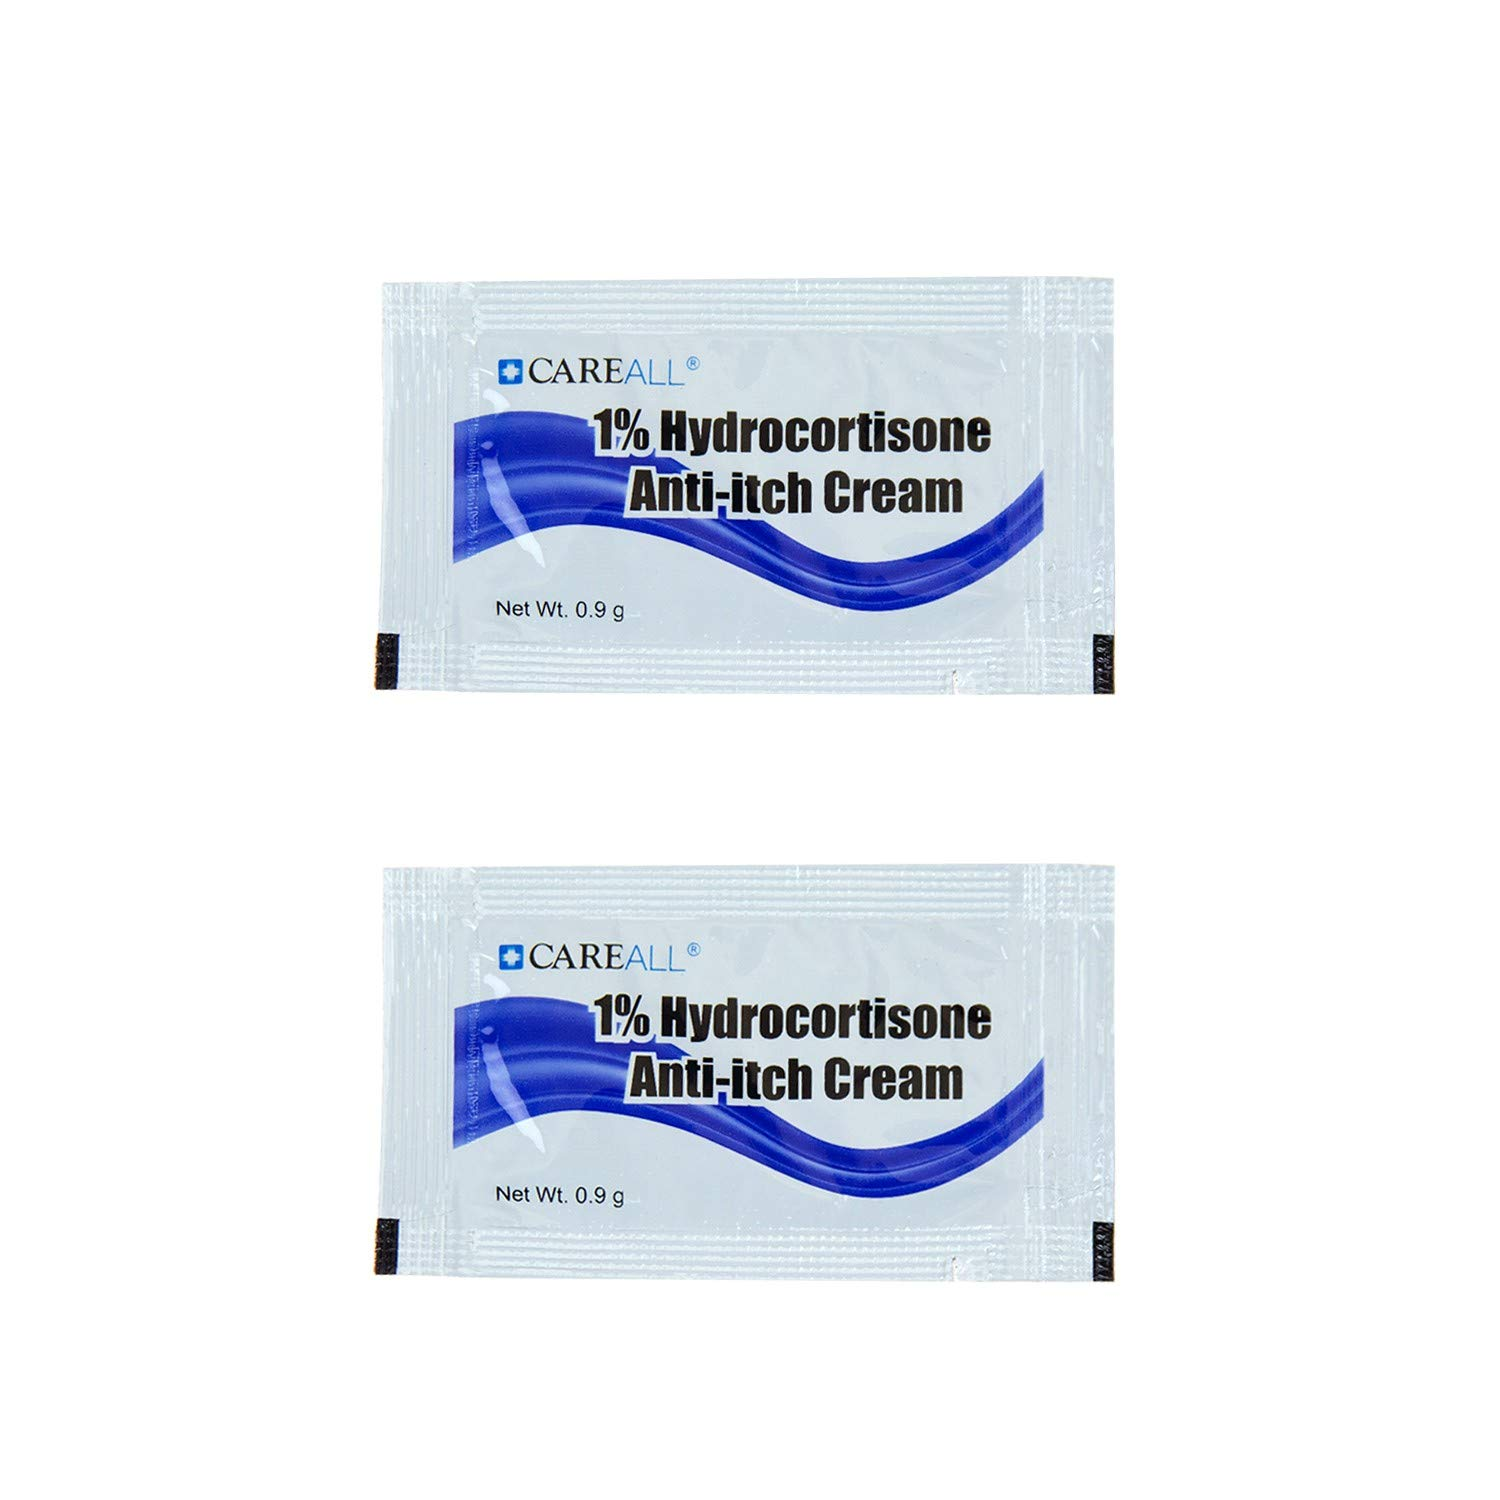 1728 Packets - Wholesale .9g Hydrocortisone Cream Packet - Bulk Case Travel Size Hygiene Toiletries by Care All